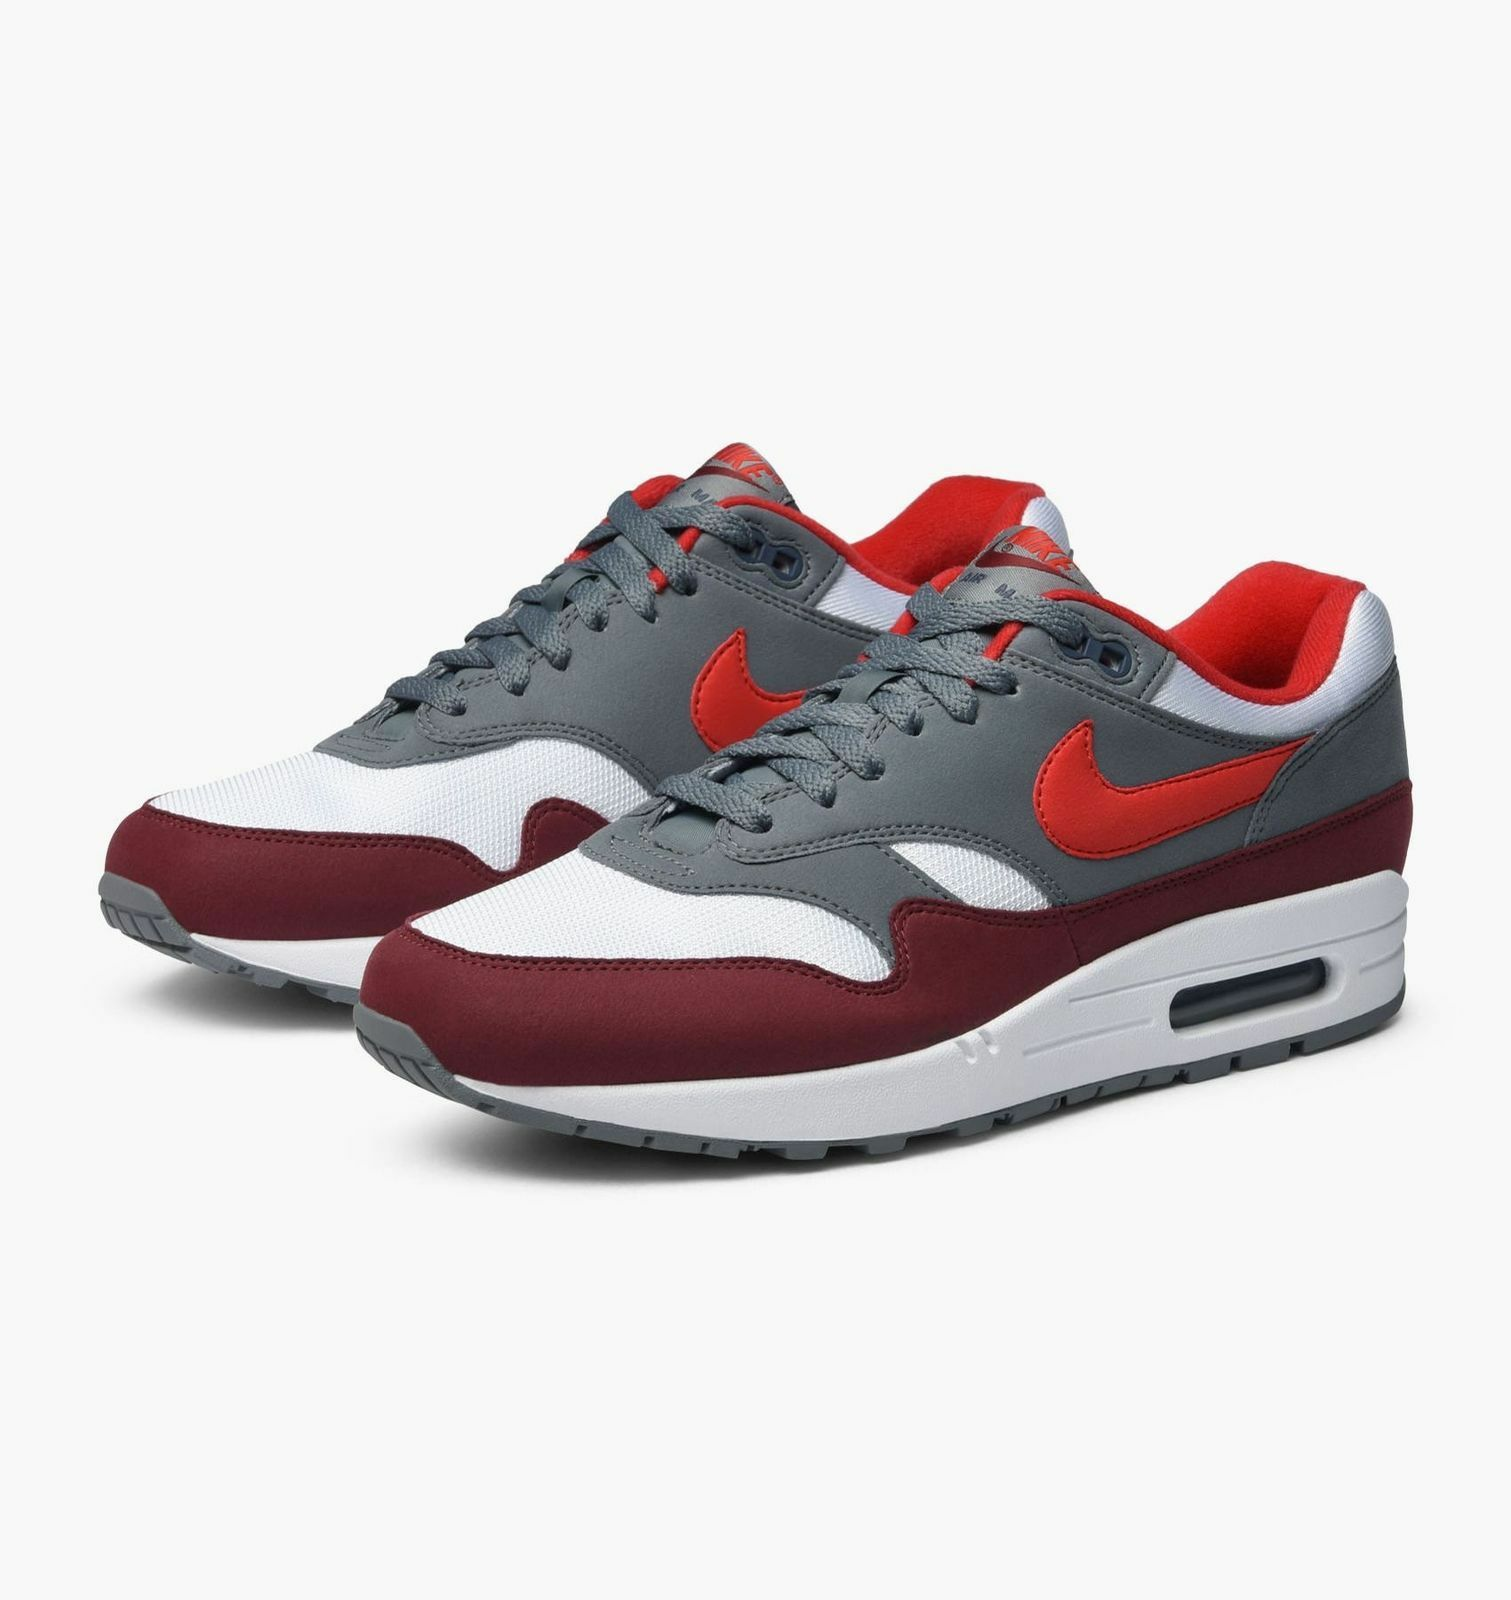 Nike Air Max 1 Mens Size 12 Skor Vit University Red Cool Gray AH8145 100